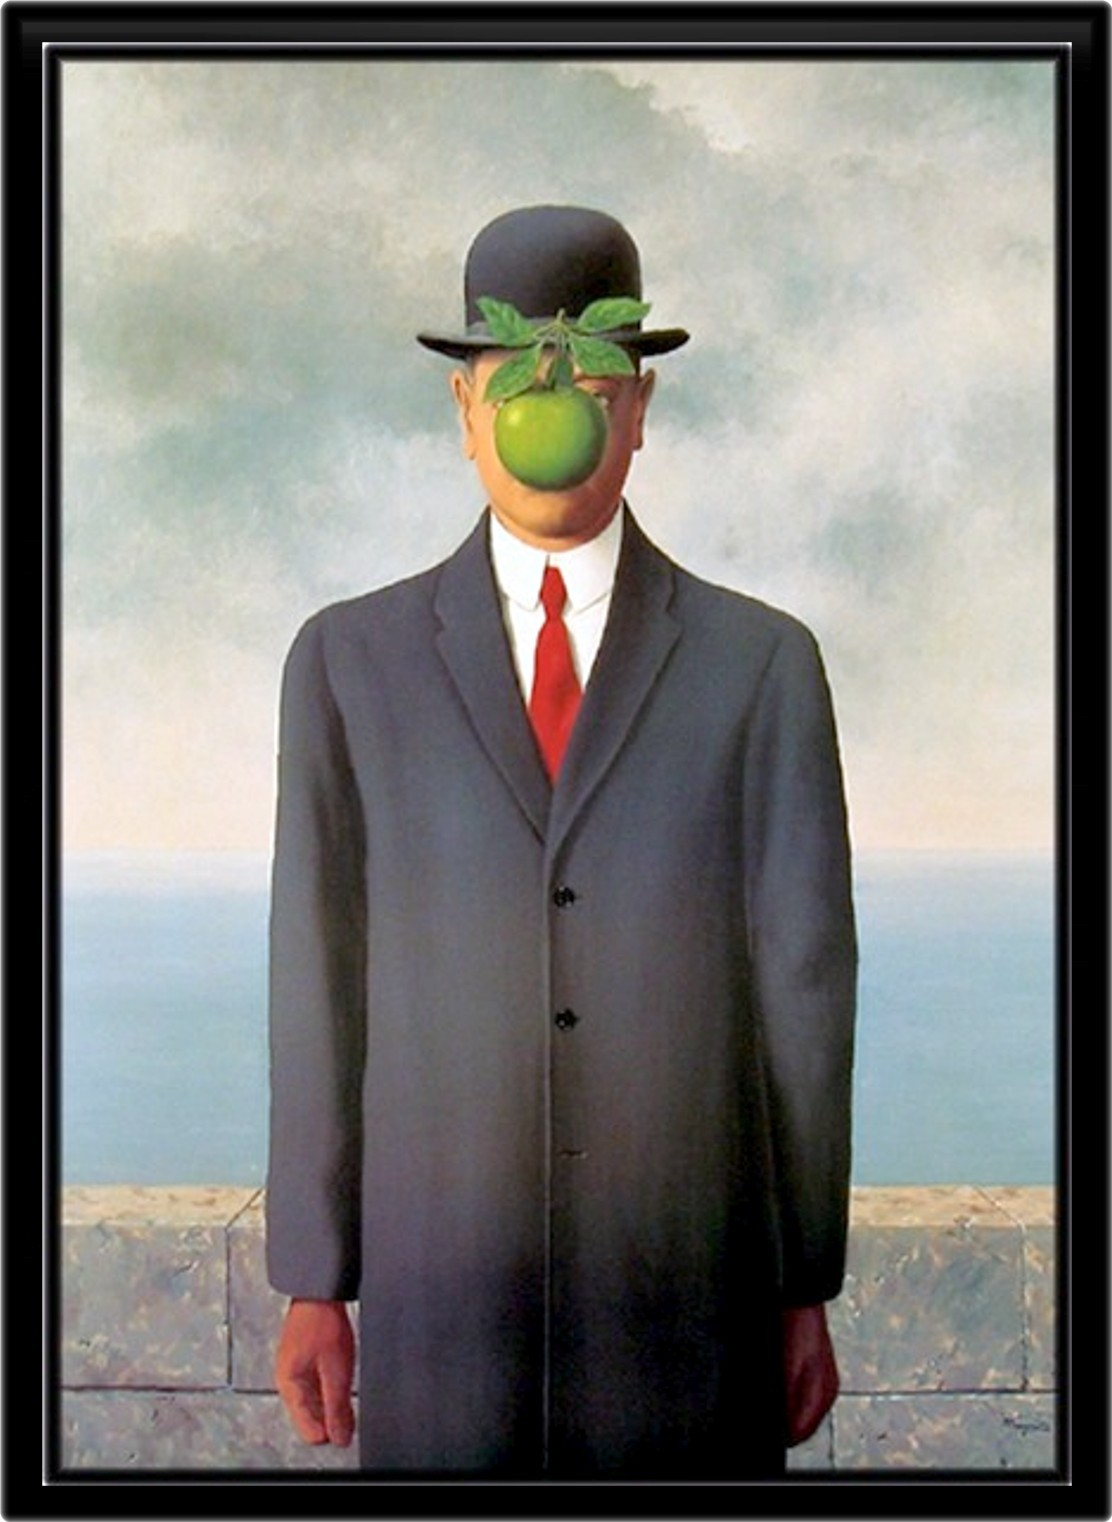 rene magritte son of HD Wallpaper